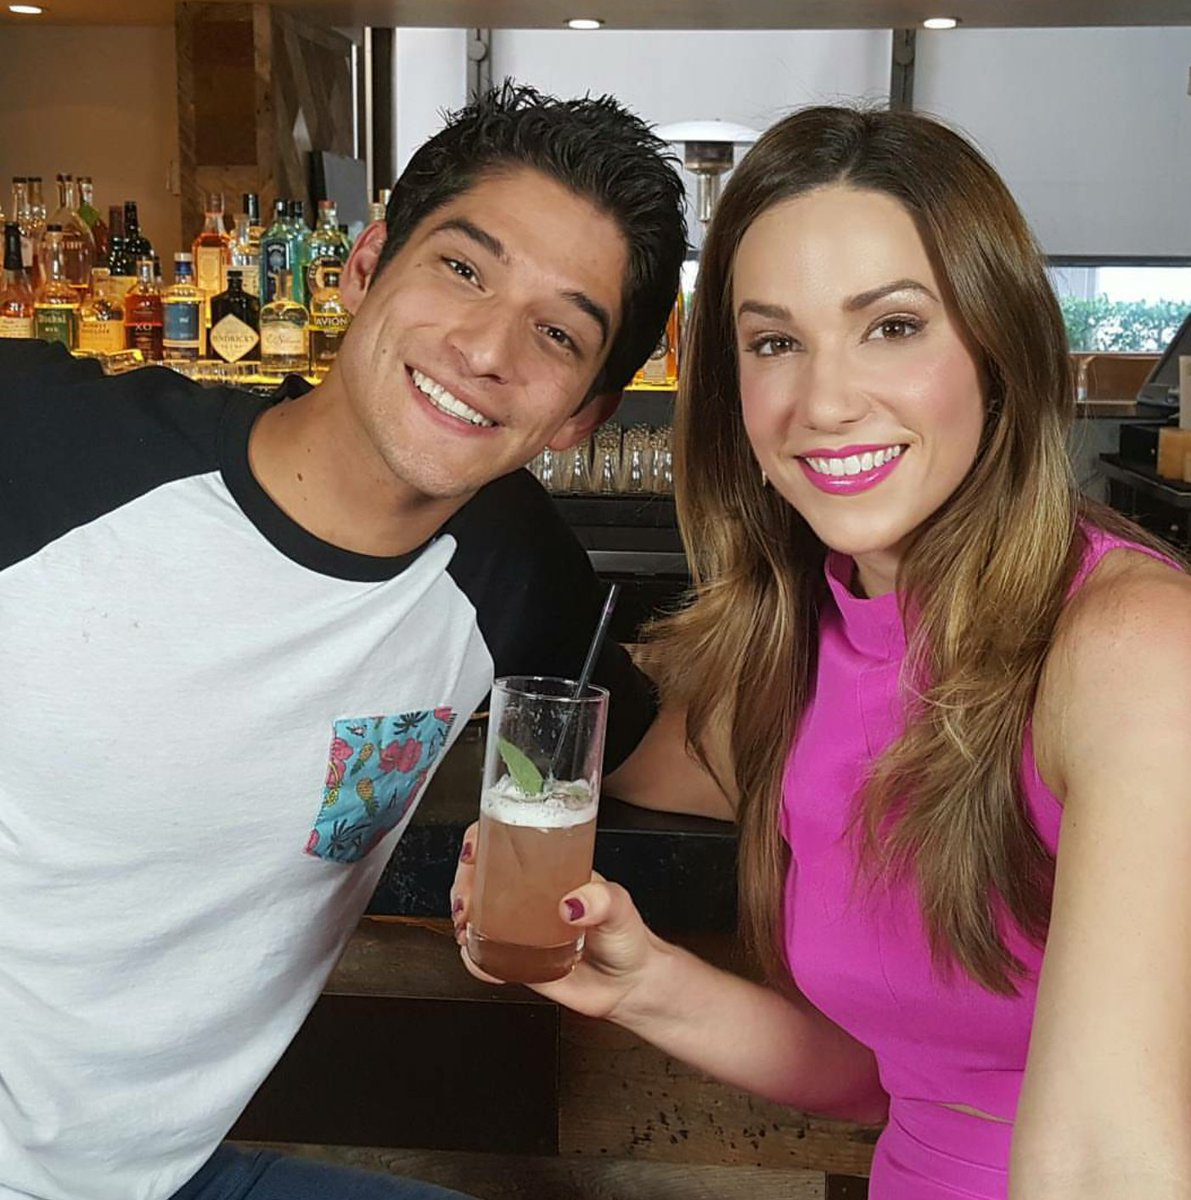 Tyler Posey tells me all about #TEENWOLF5BTODAY in @TheWrap's #DrinkingWiththeStars watch-> https://t.co/2MwEQWPLYb https://t.co/d7z9GftIXL